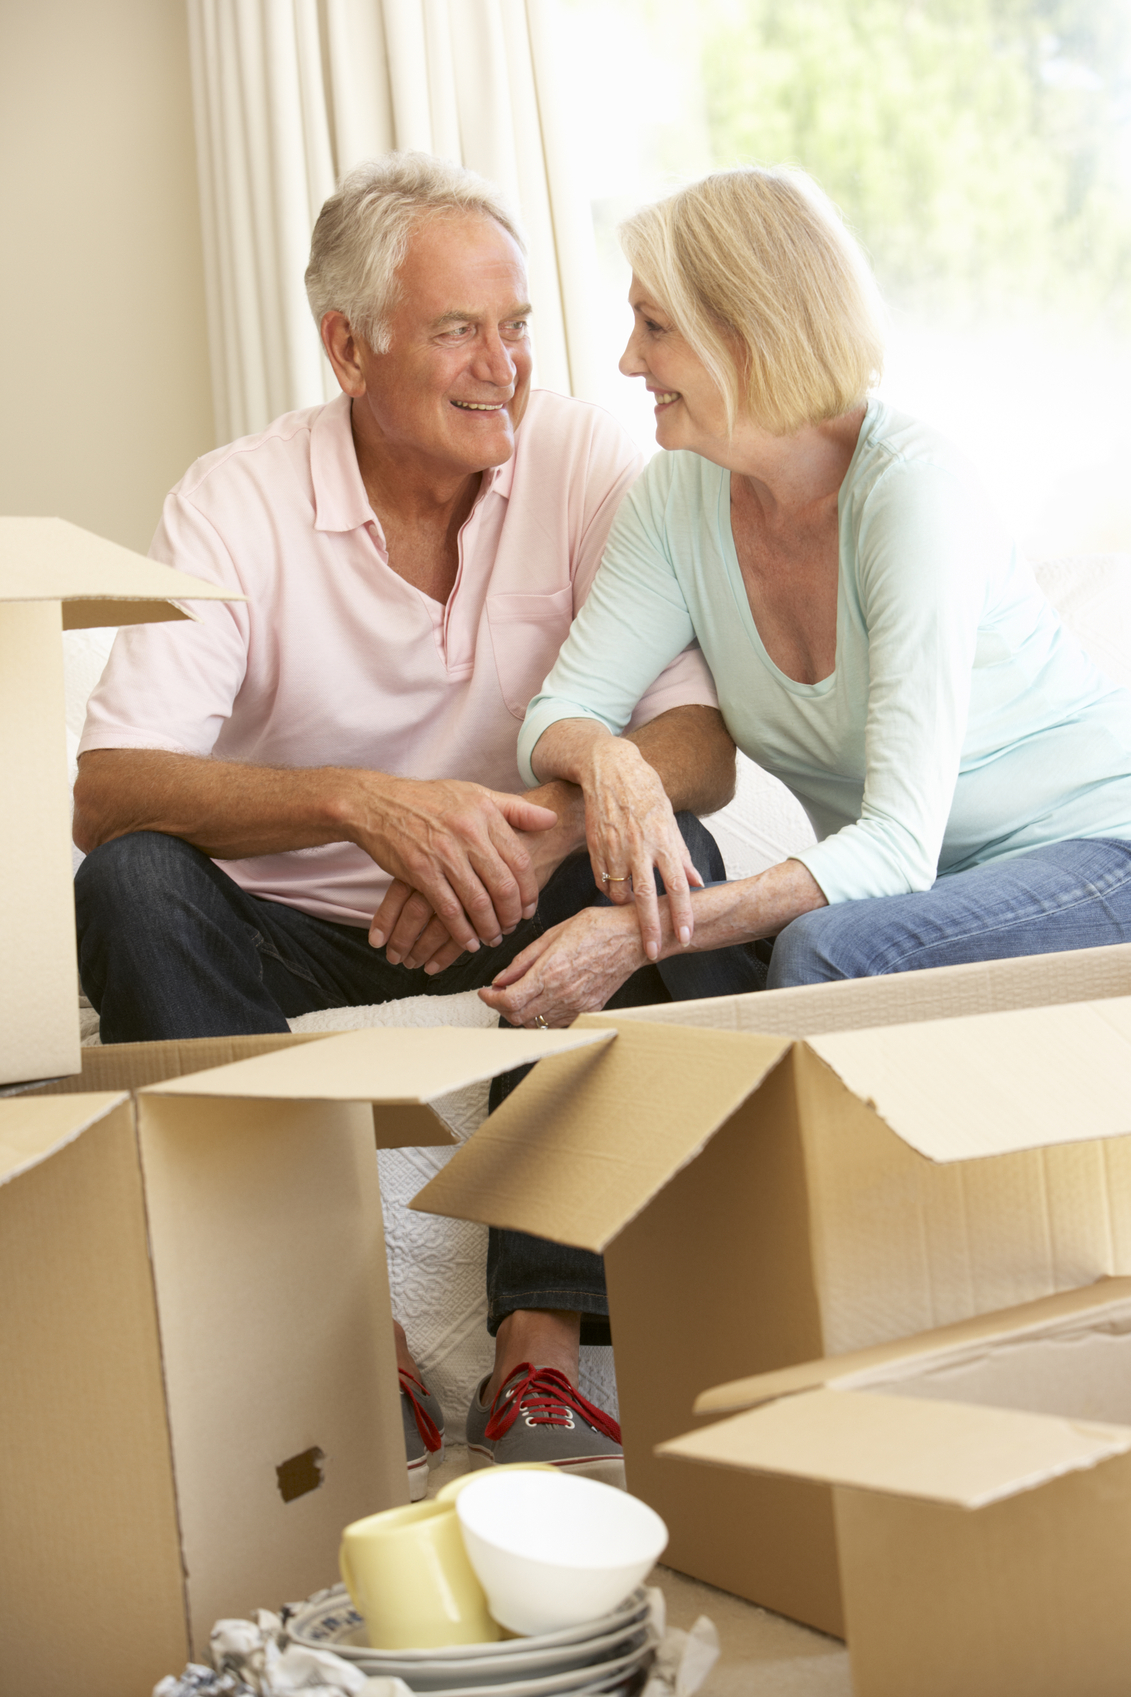 Senior Couple Moving Into New Home Surrounded By Packing Boxes And Smiling on Sofa